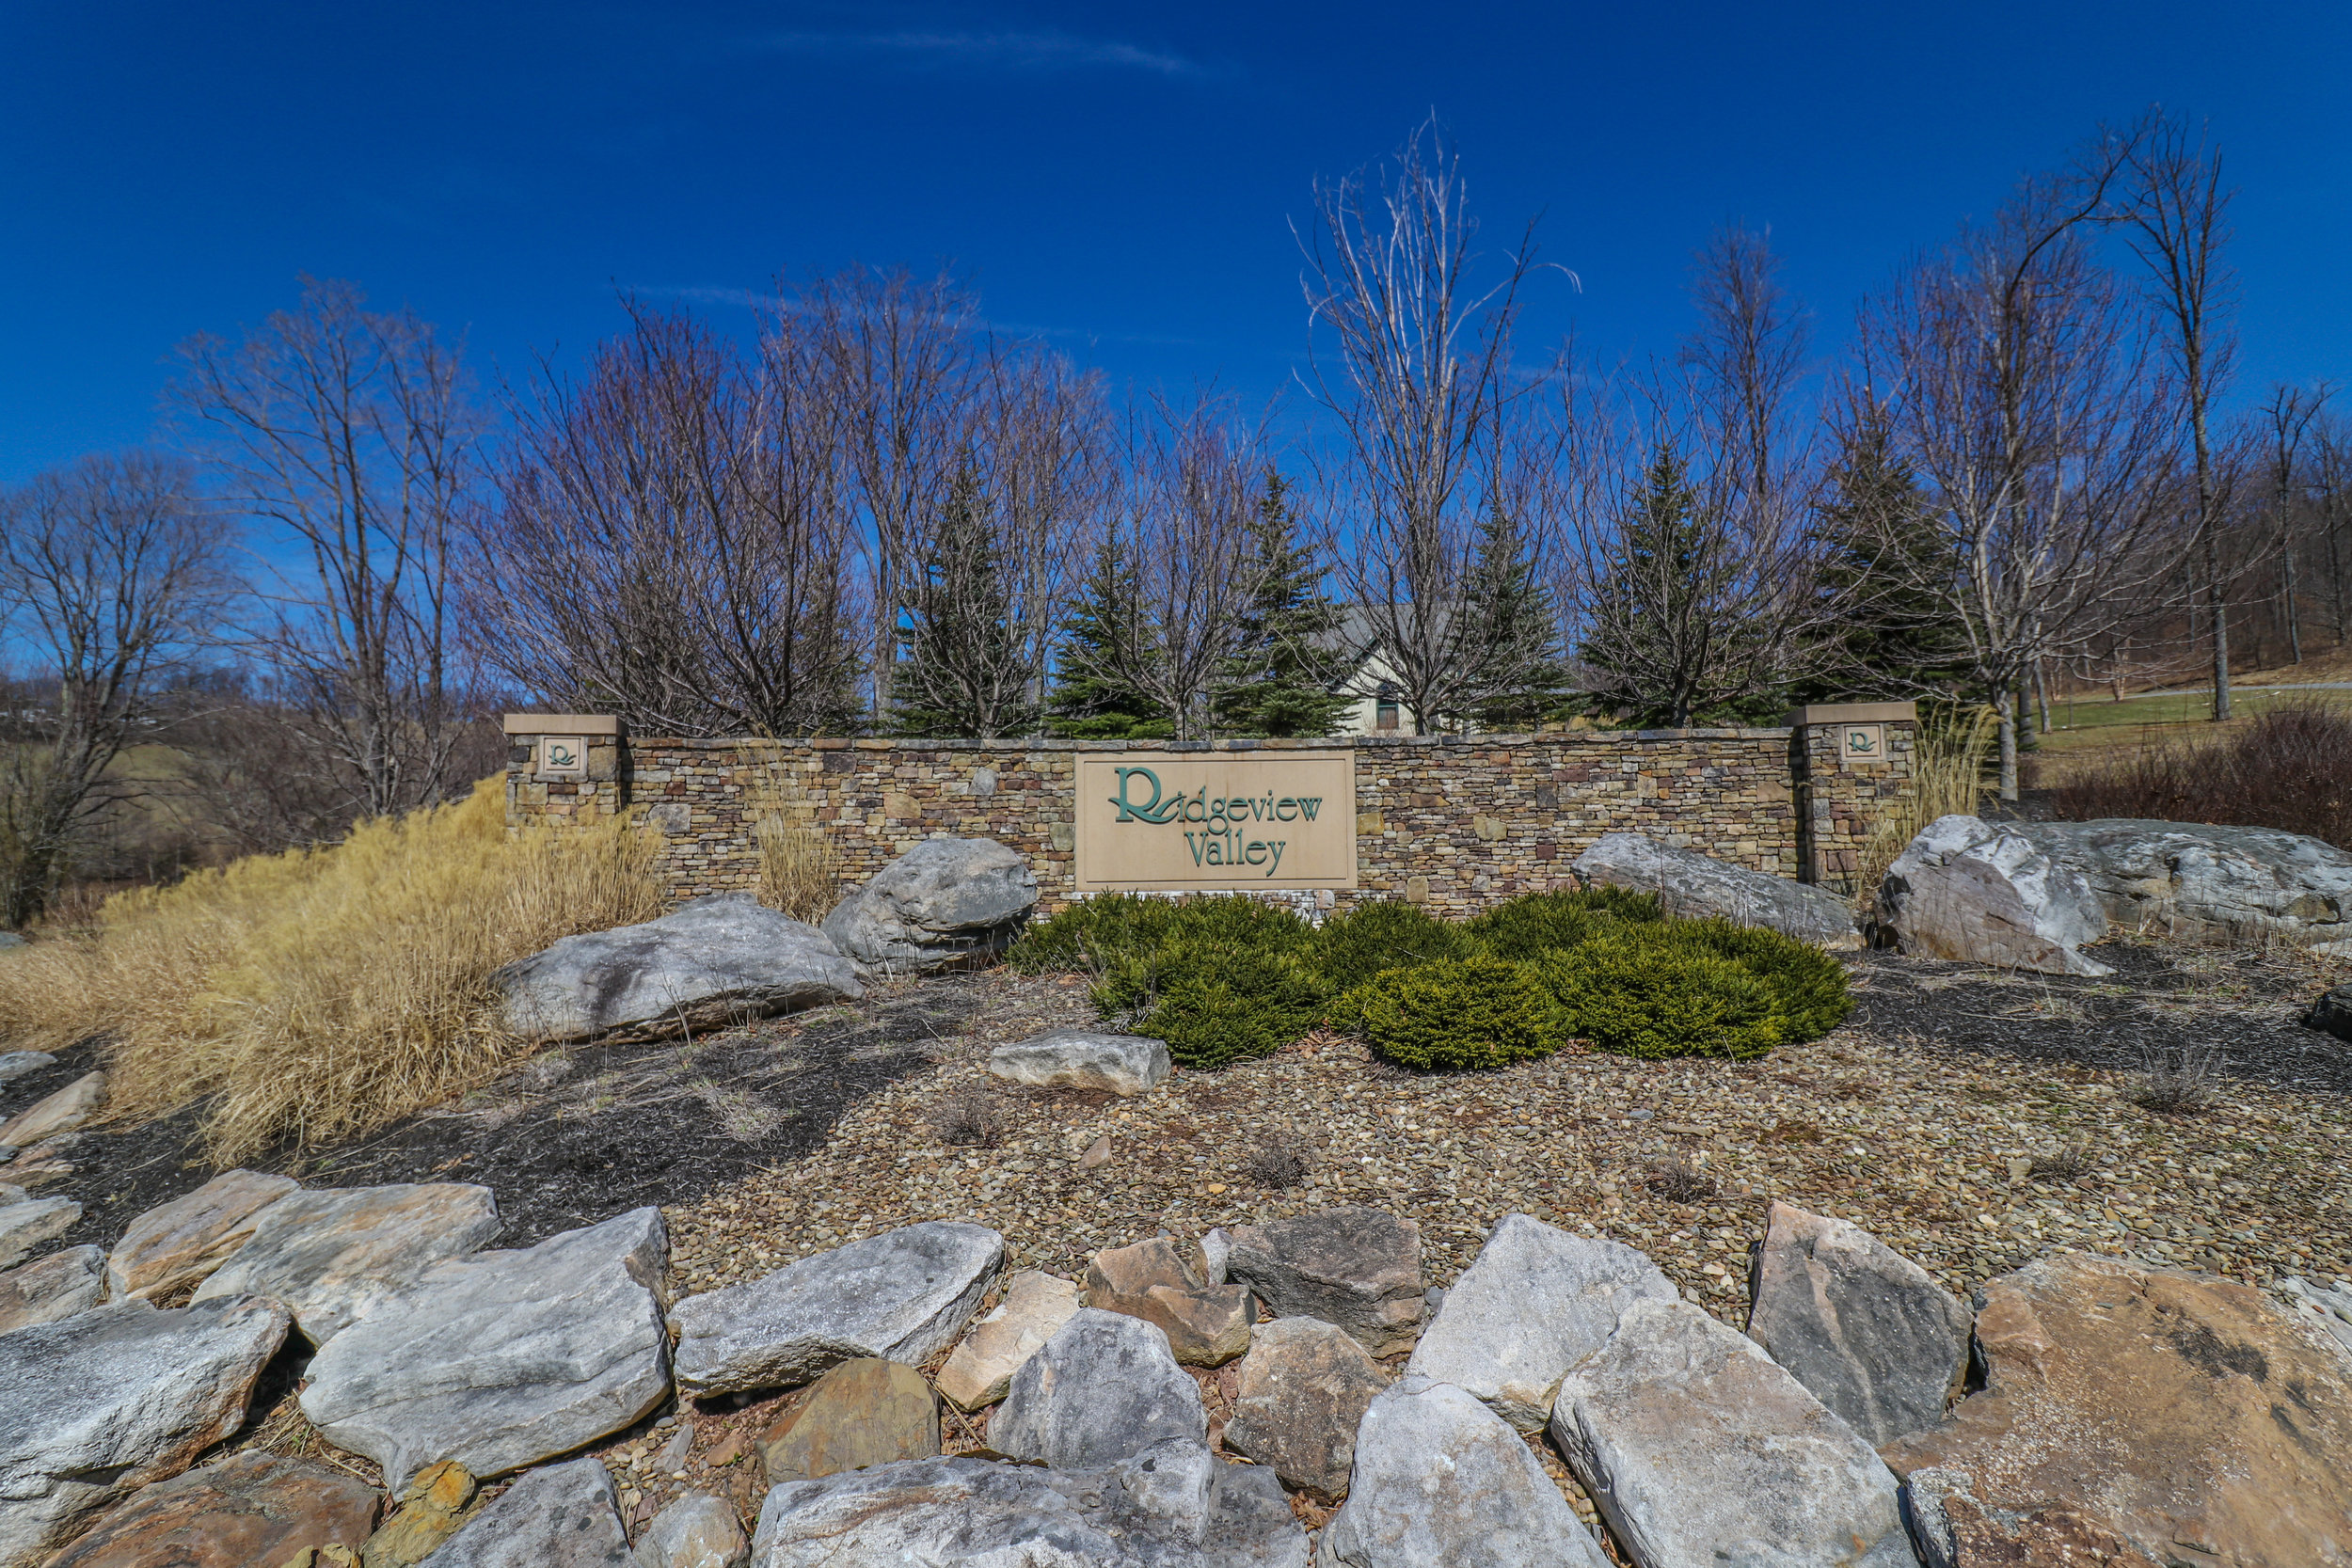 gosnell_builders_home_for_sale_ridgeview_valley29.jpg